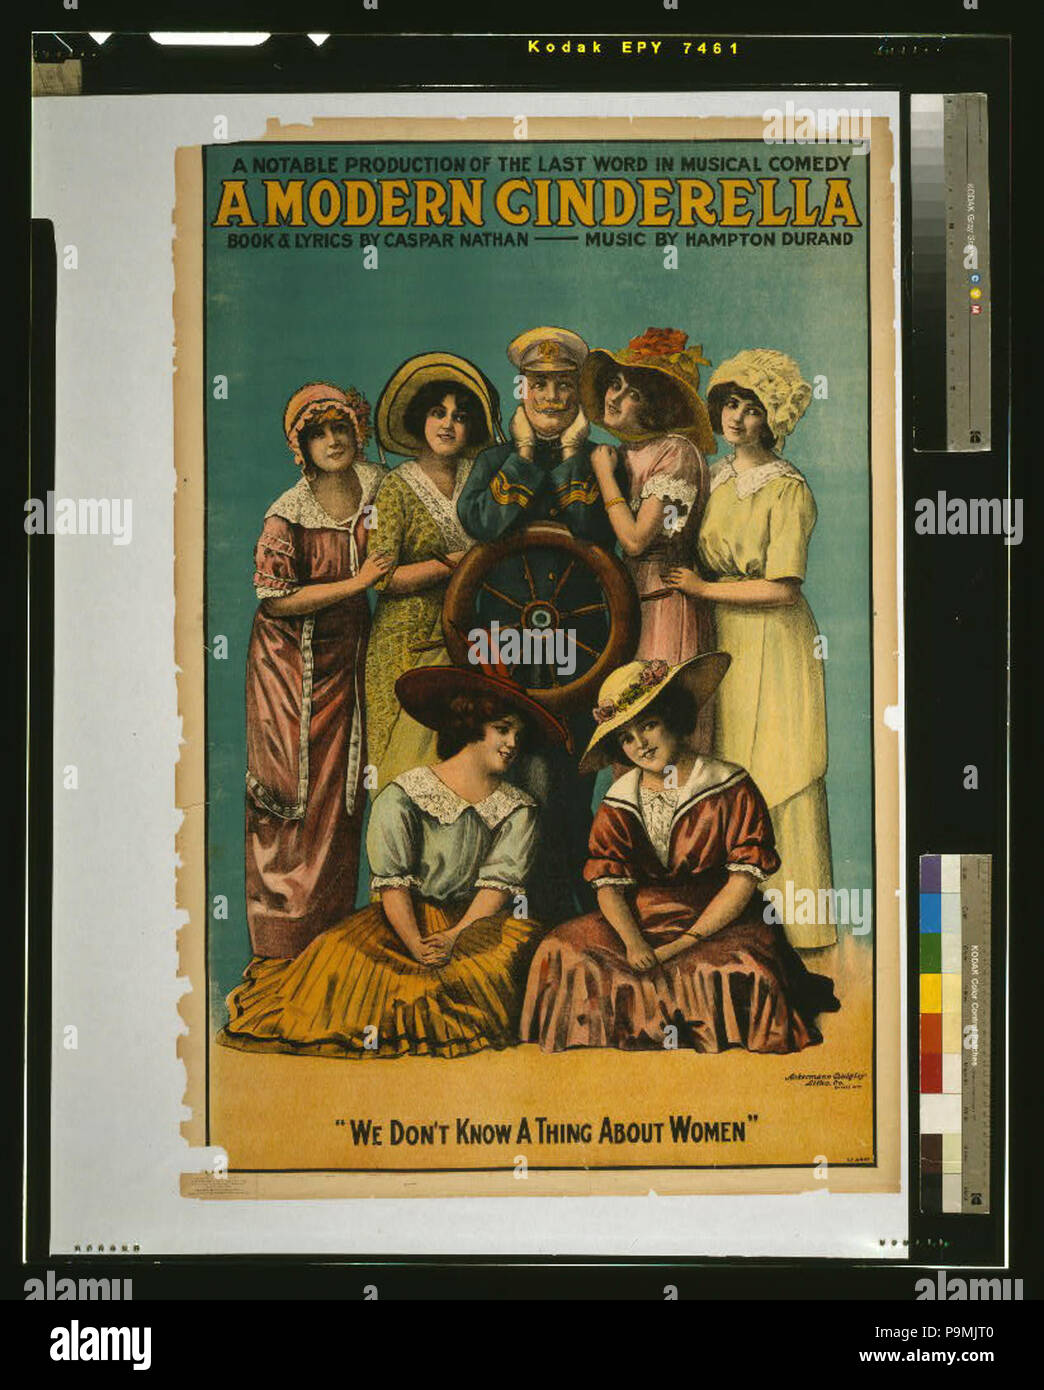 A modern Cinderella a notable production of the last word in